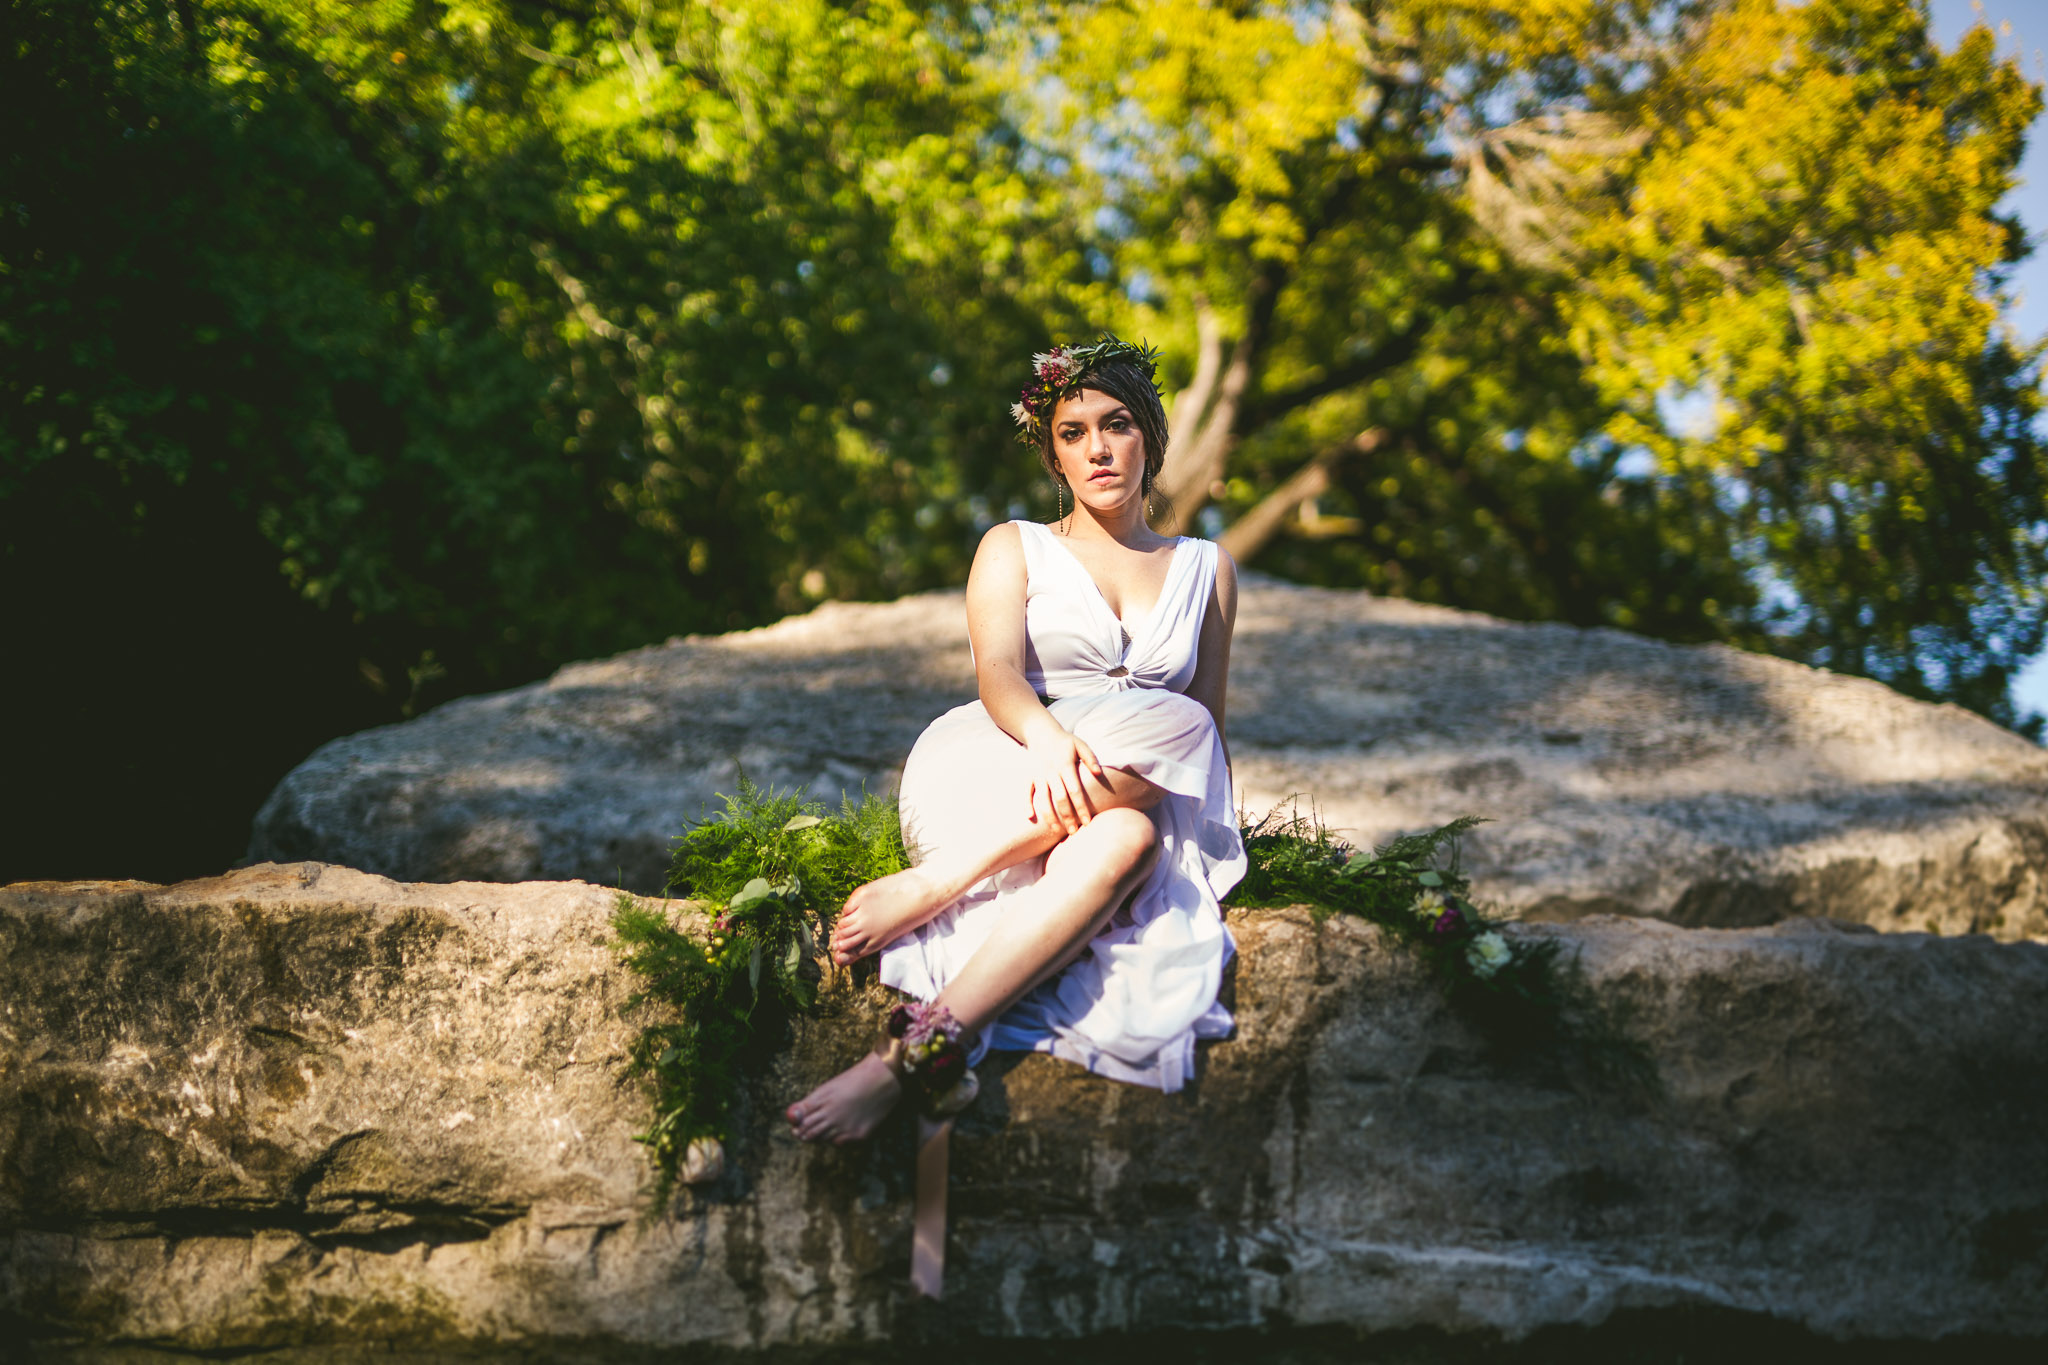 four-elements-styled-shoot-happydaymedia-web-142